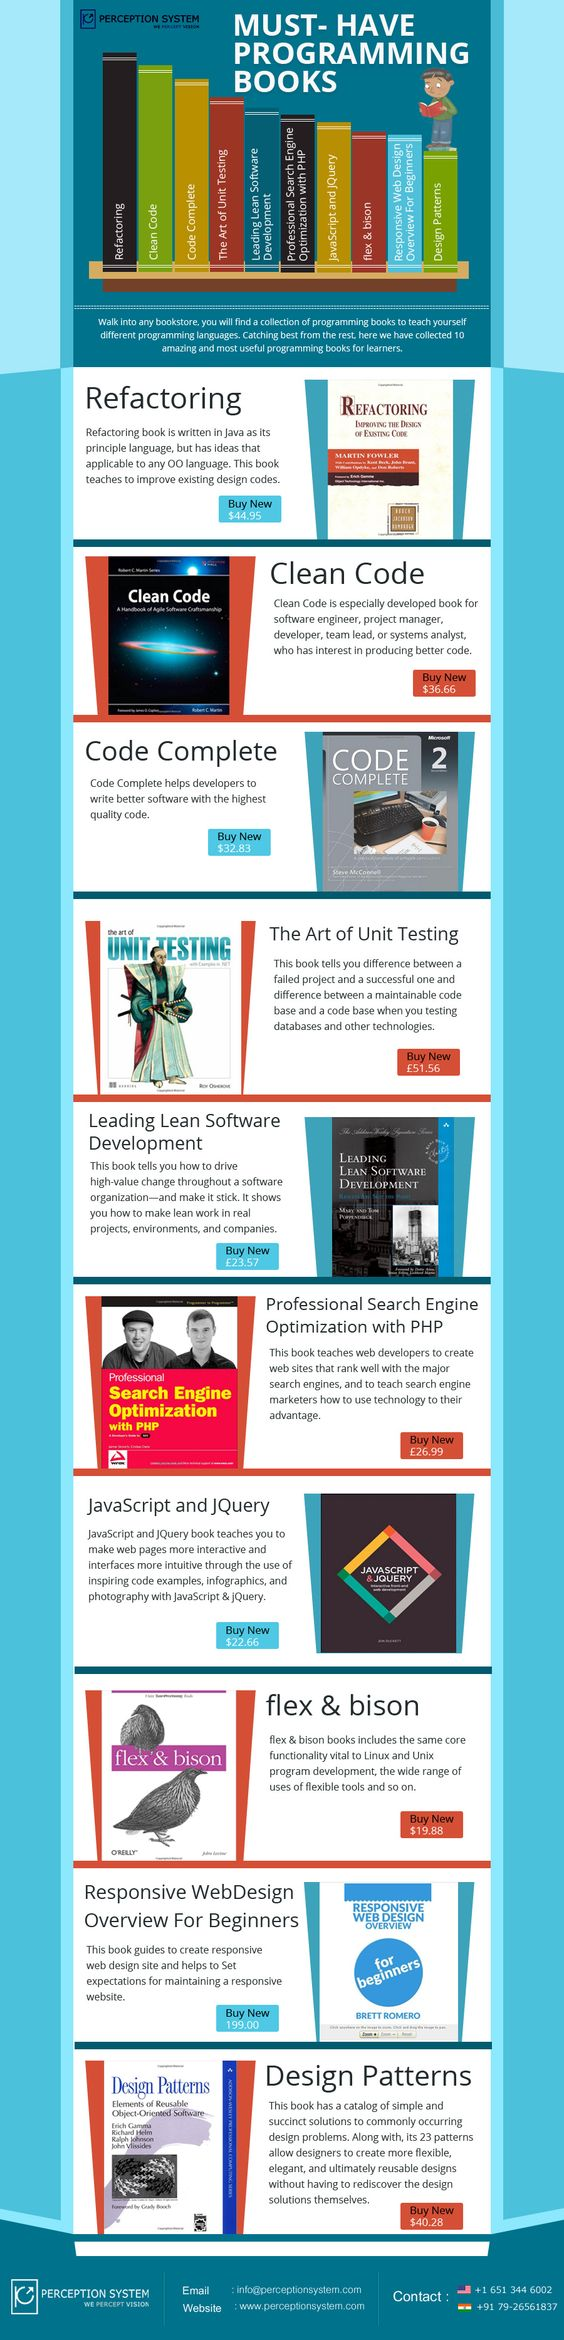 Must Have Programming Books